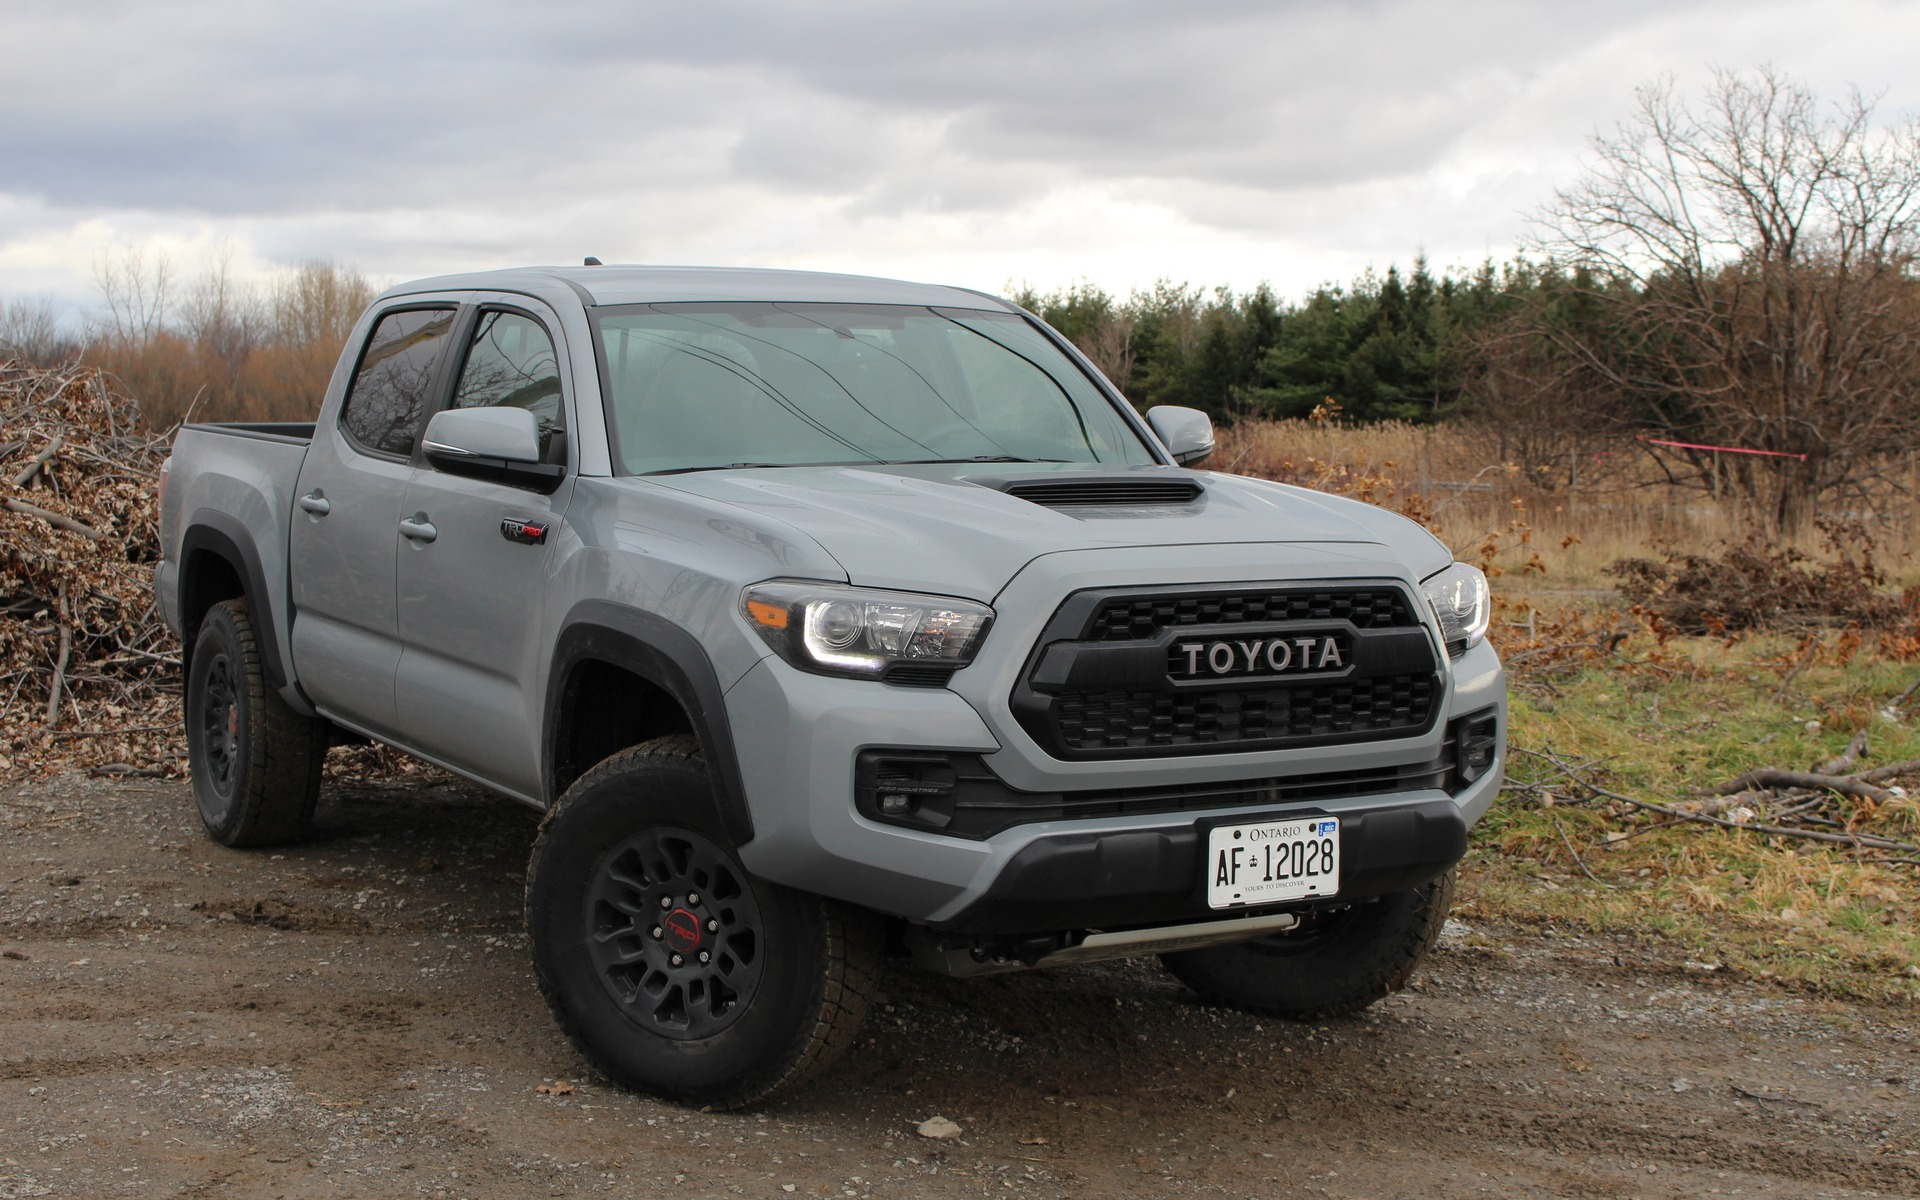 2017 Toyota Tacoma Trd Pro Where Do You Want To Go Today